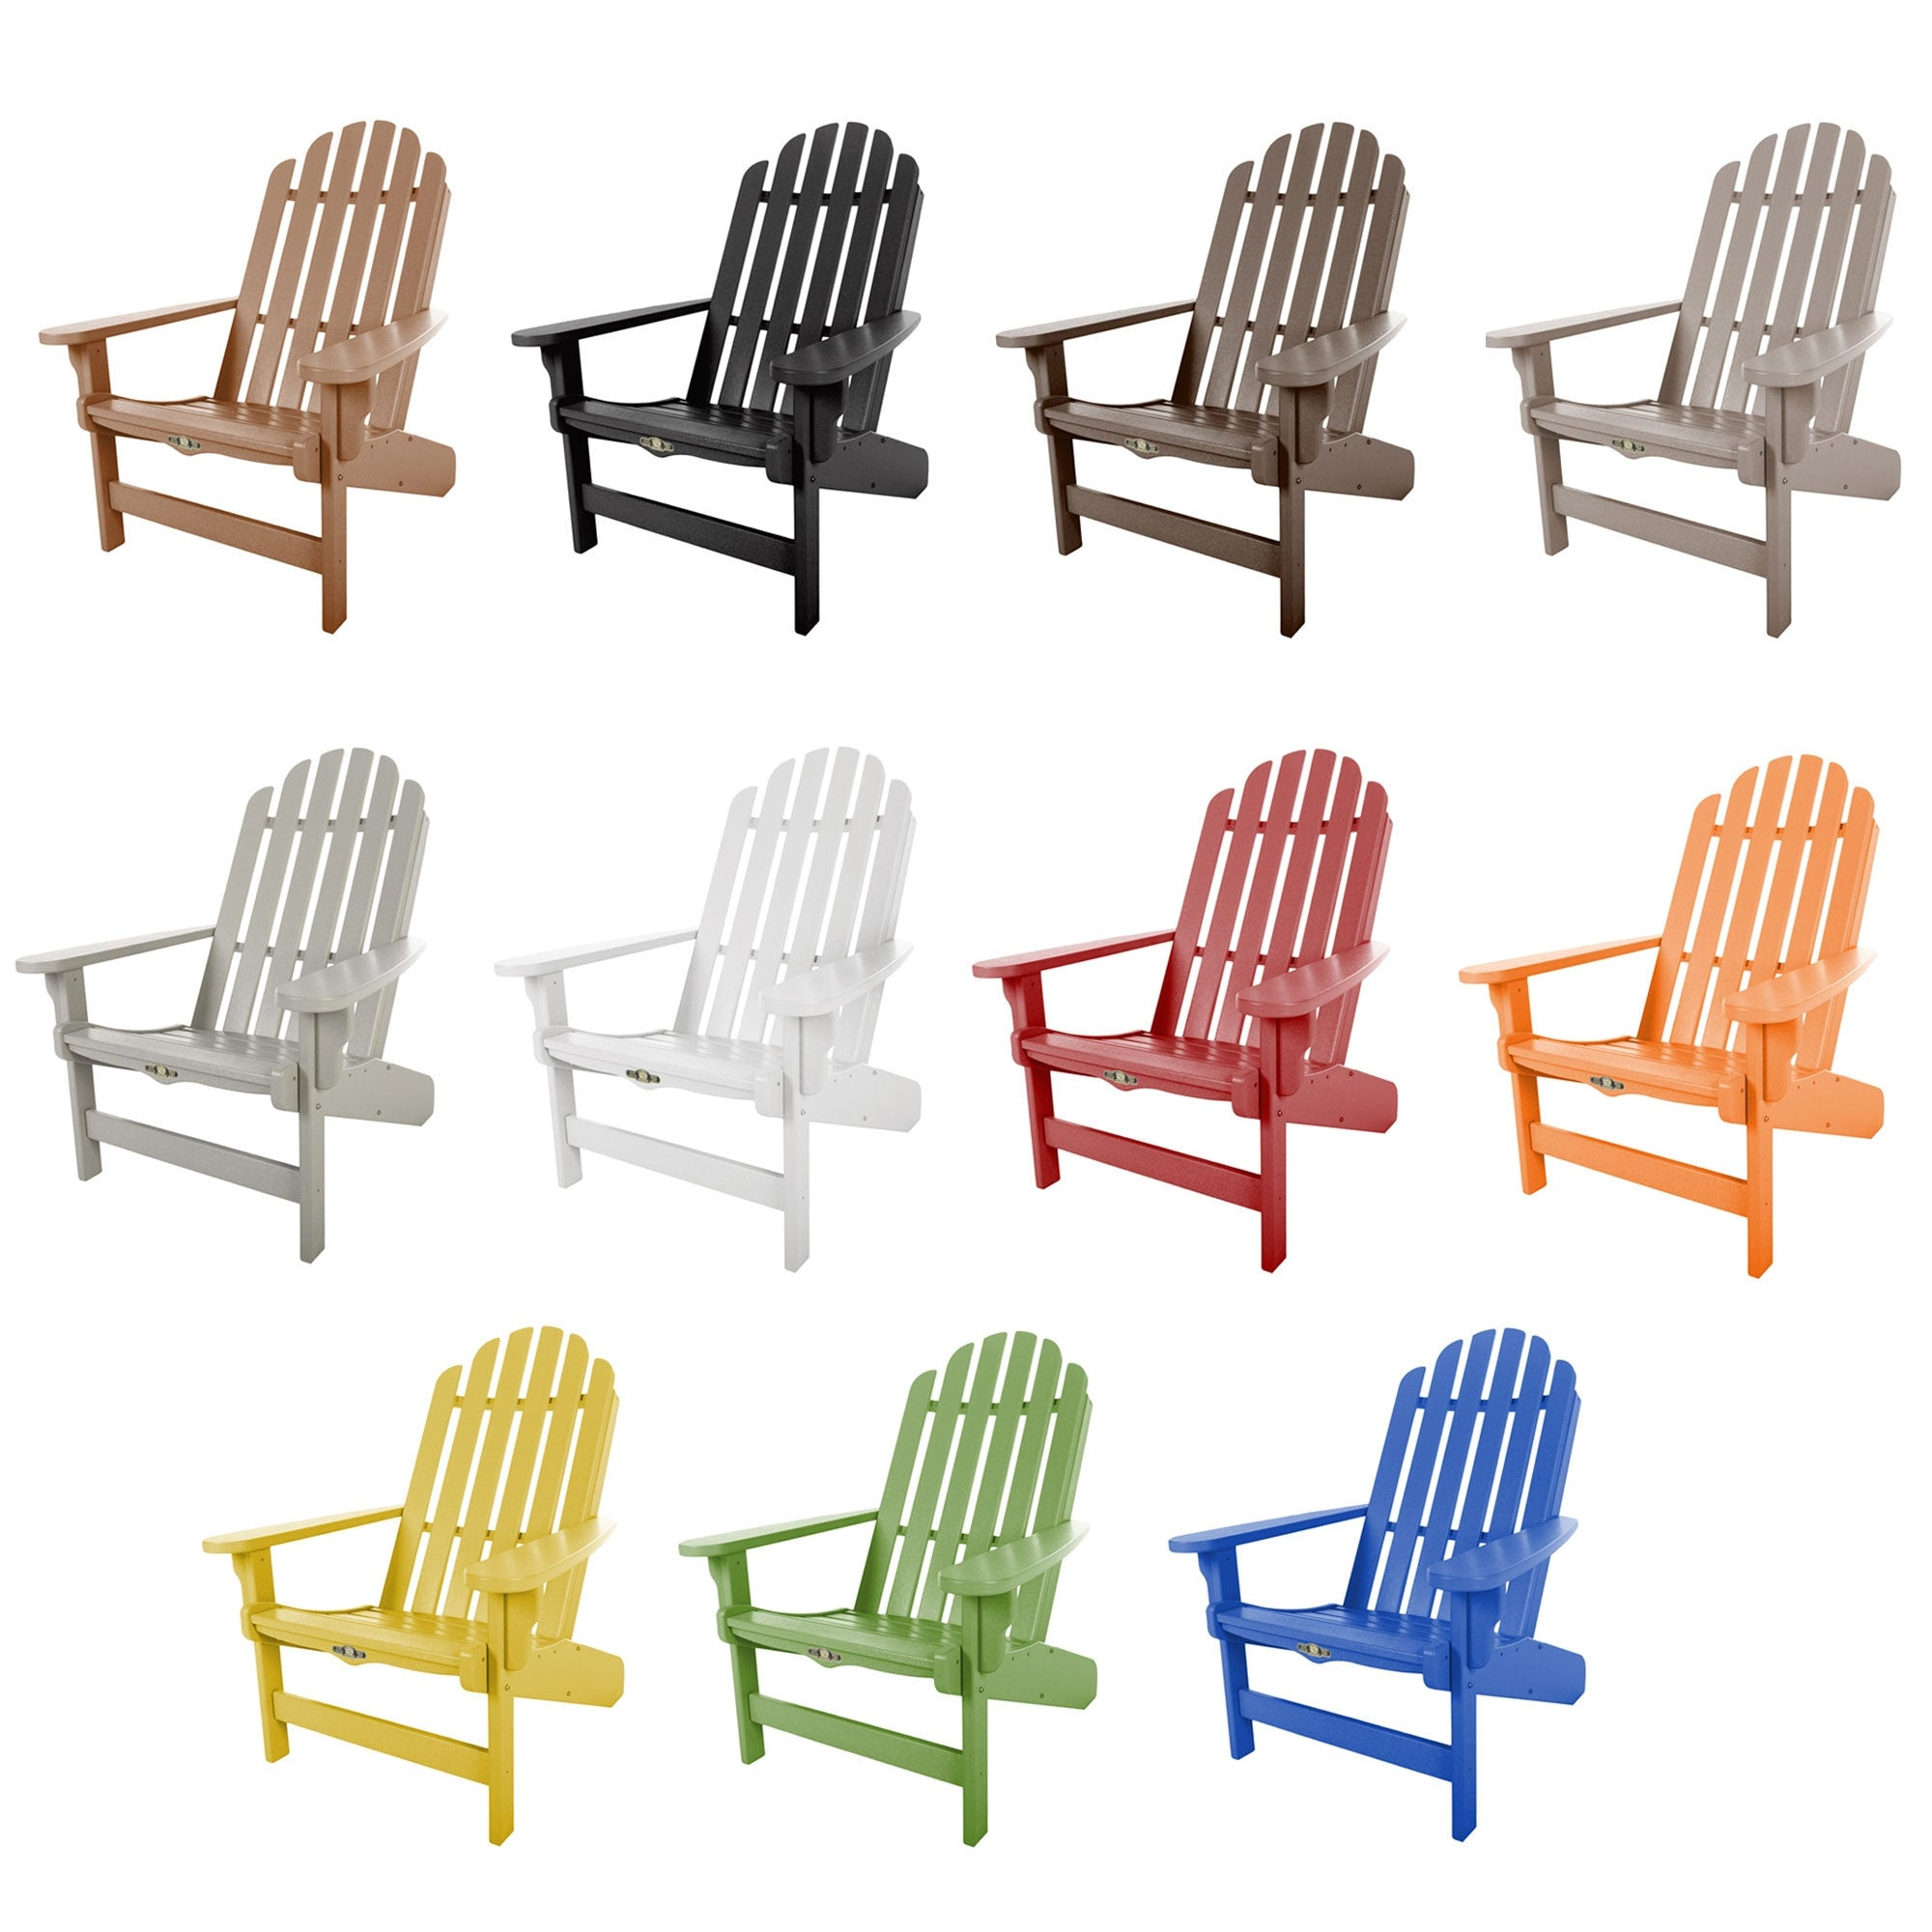 Durawood Essential Adirondack Chair   Pawleys Island ...